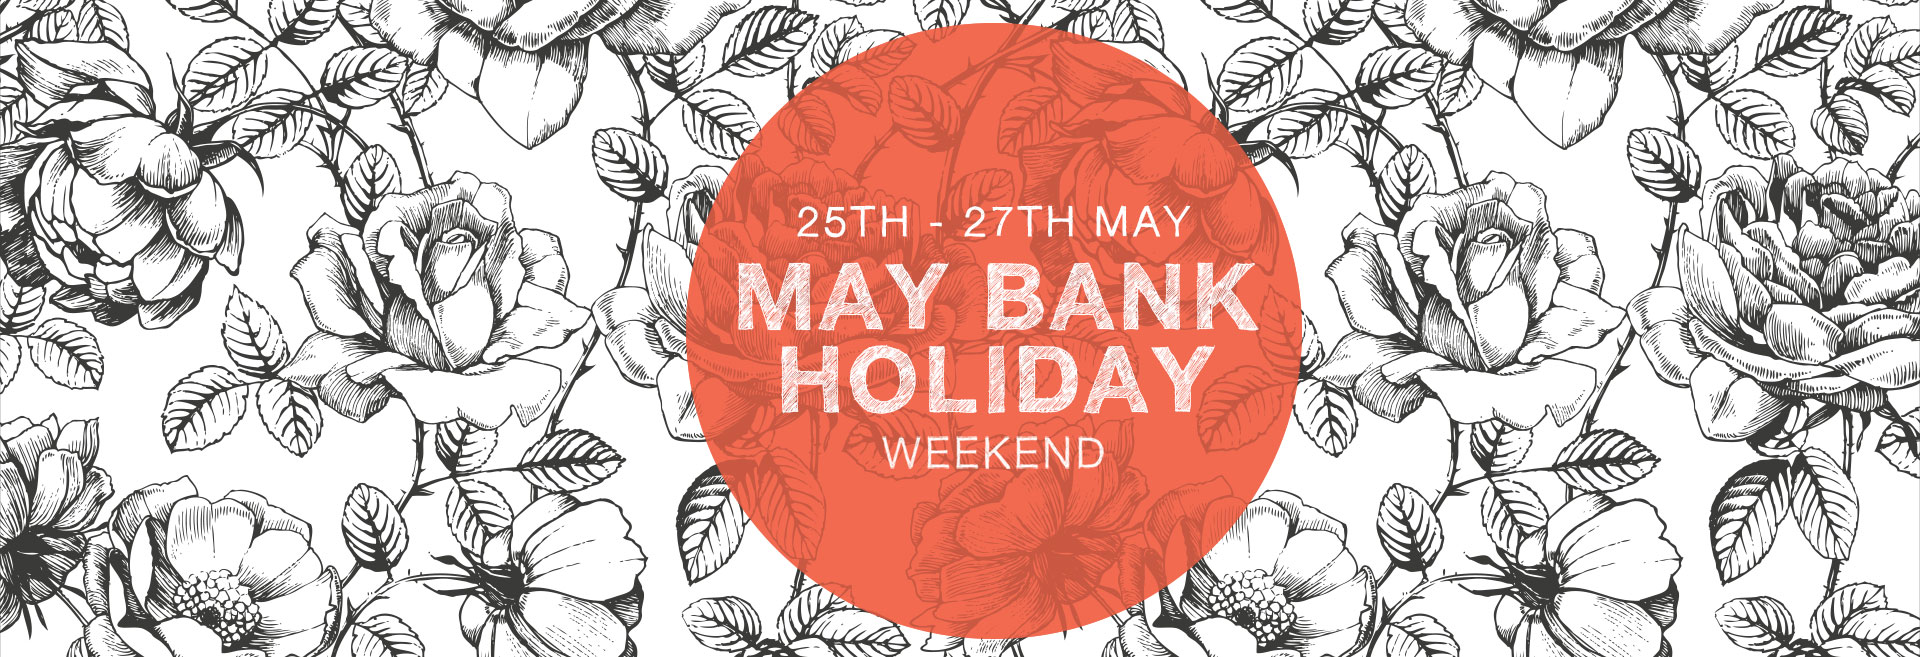 May Bank Holiday at The Plough on the Moor